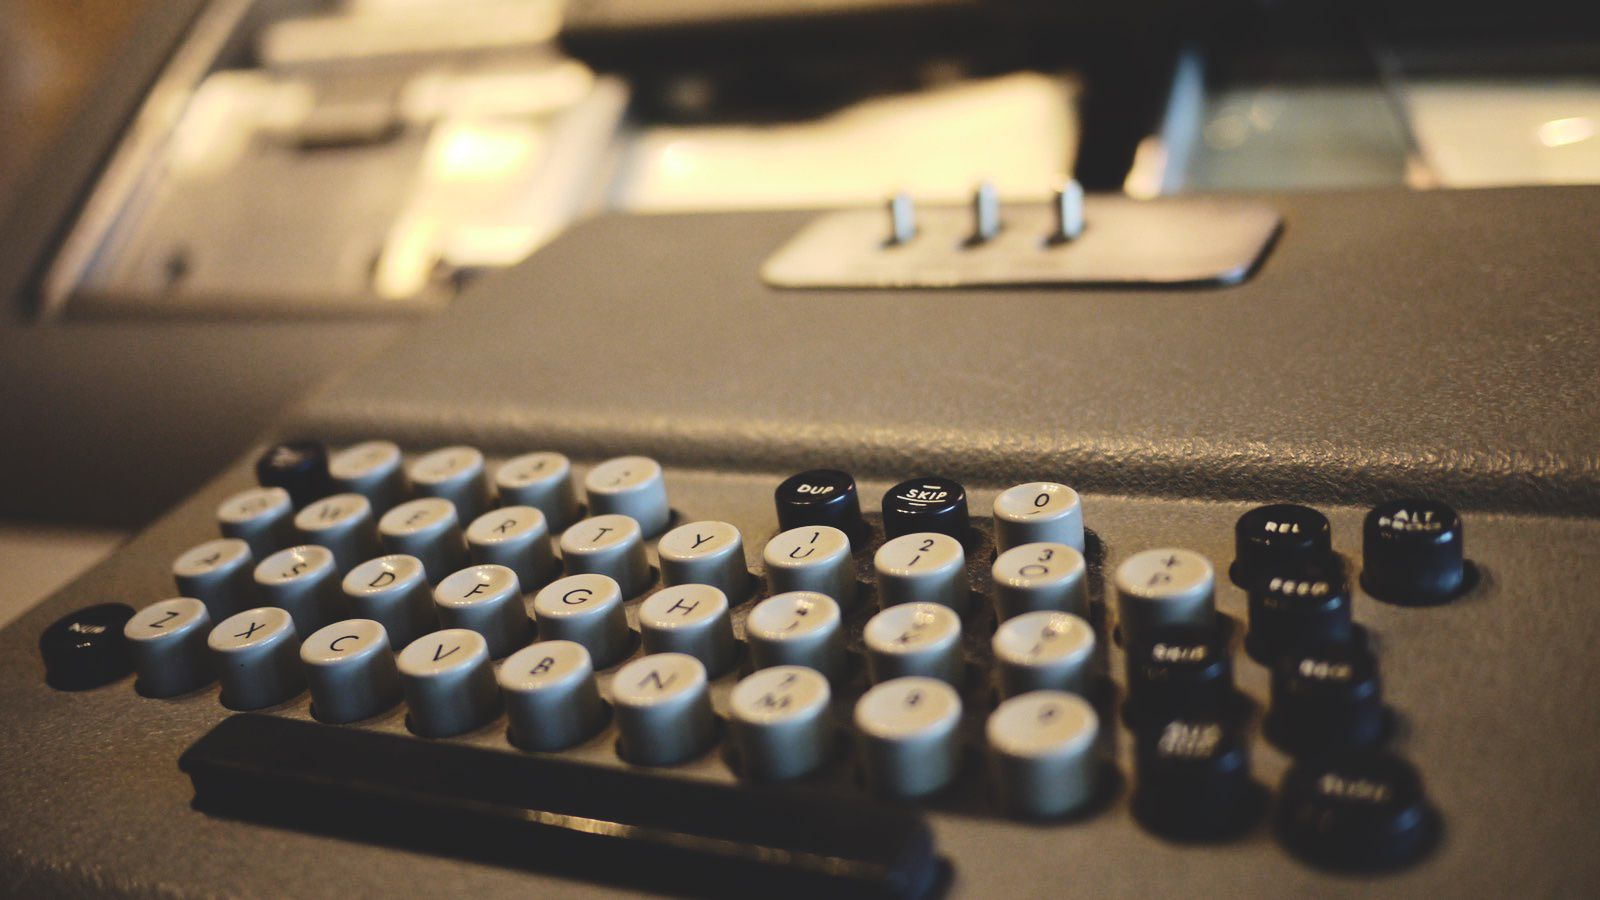 Bild »IBM Type 26 Printing Card Punch Keyboard« von Ivan Lian